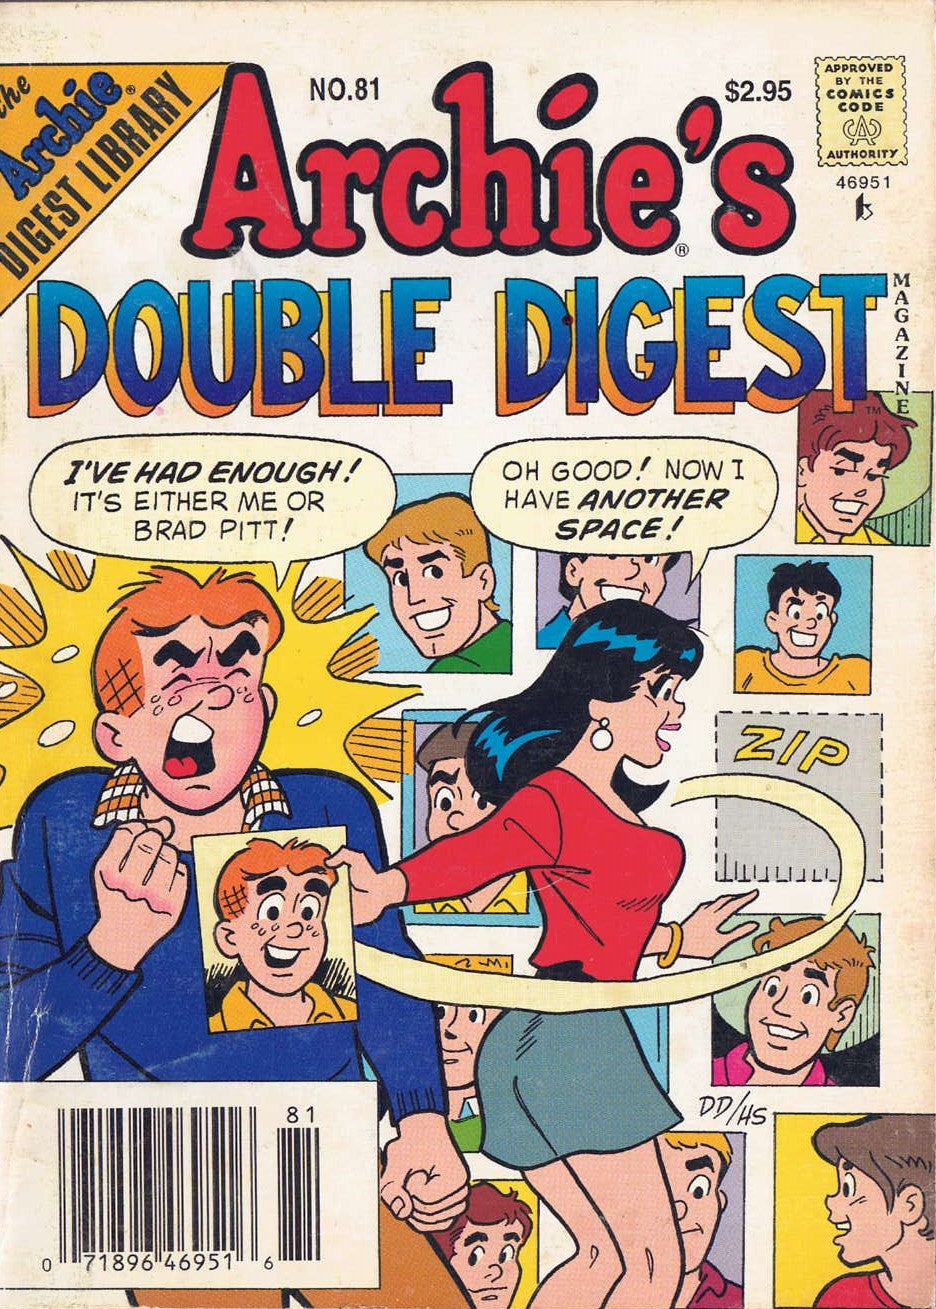 Archie's Double Digest #81 VG 1995 - Busy Bee Emporium